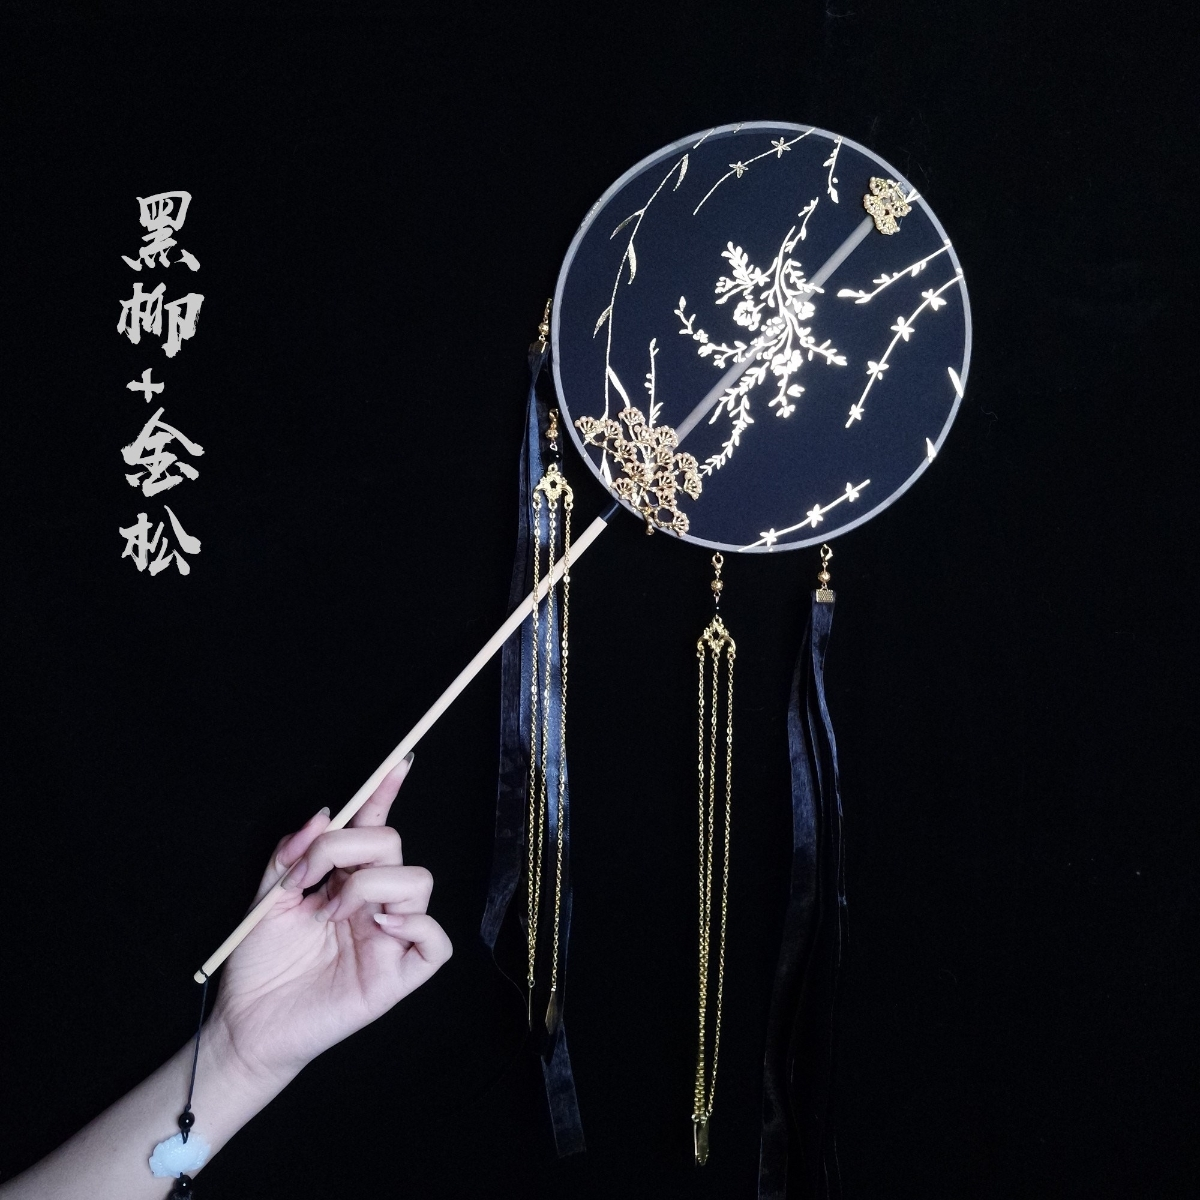 Hand-held Hanjacket Hand-held props Group Fan Ancient wind long handle tassels Double-sided Hanjacket Long handle Group Fan Palace Fan